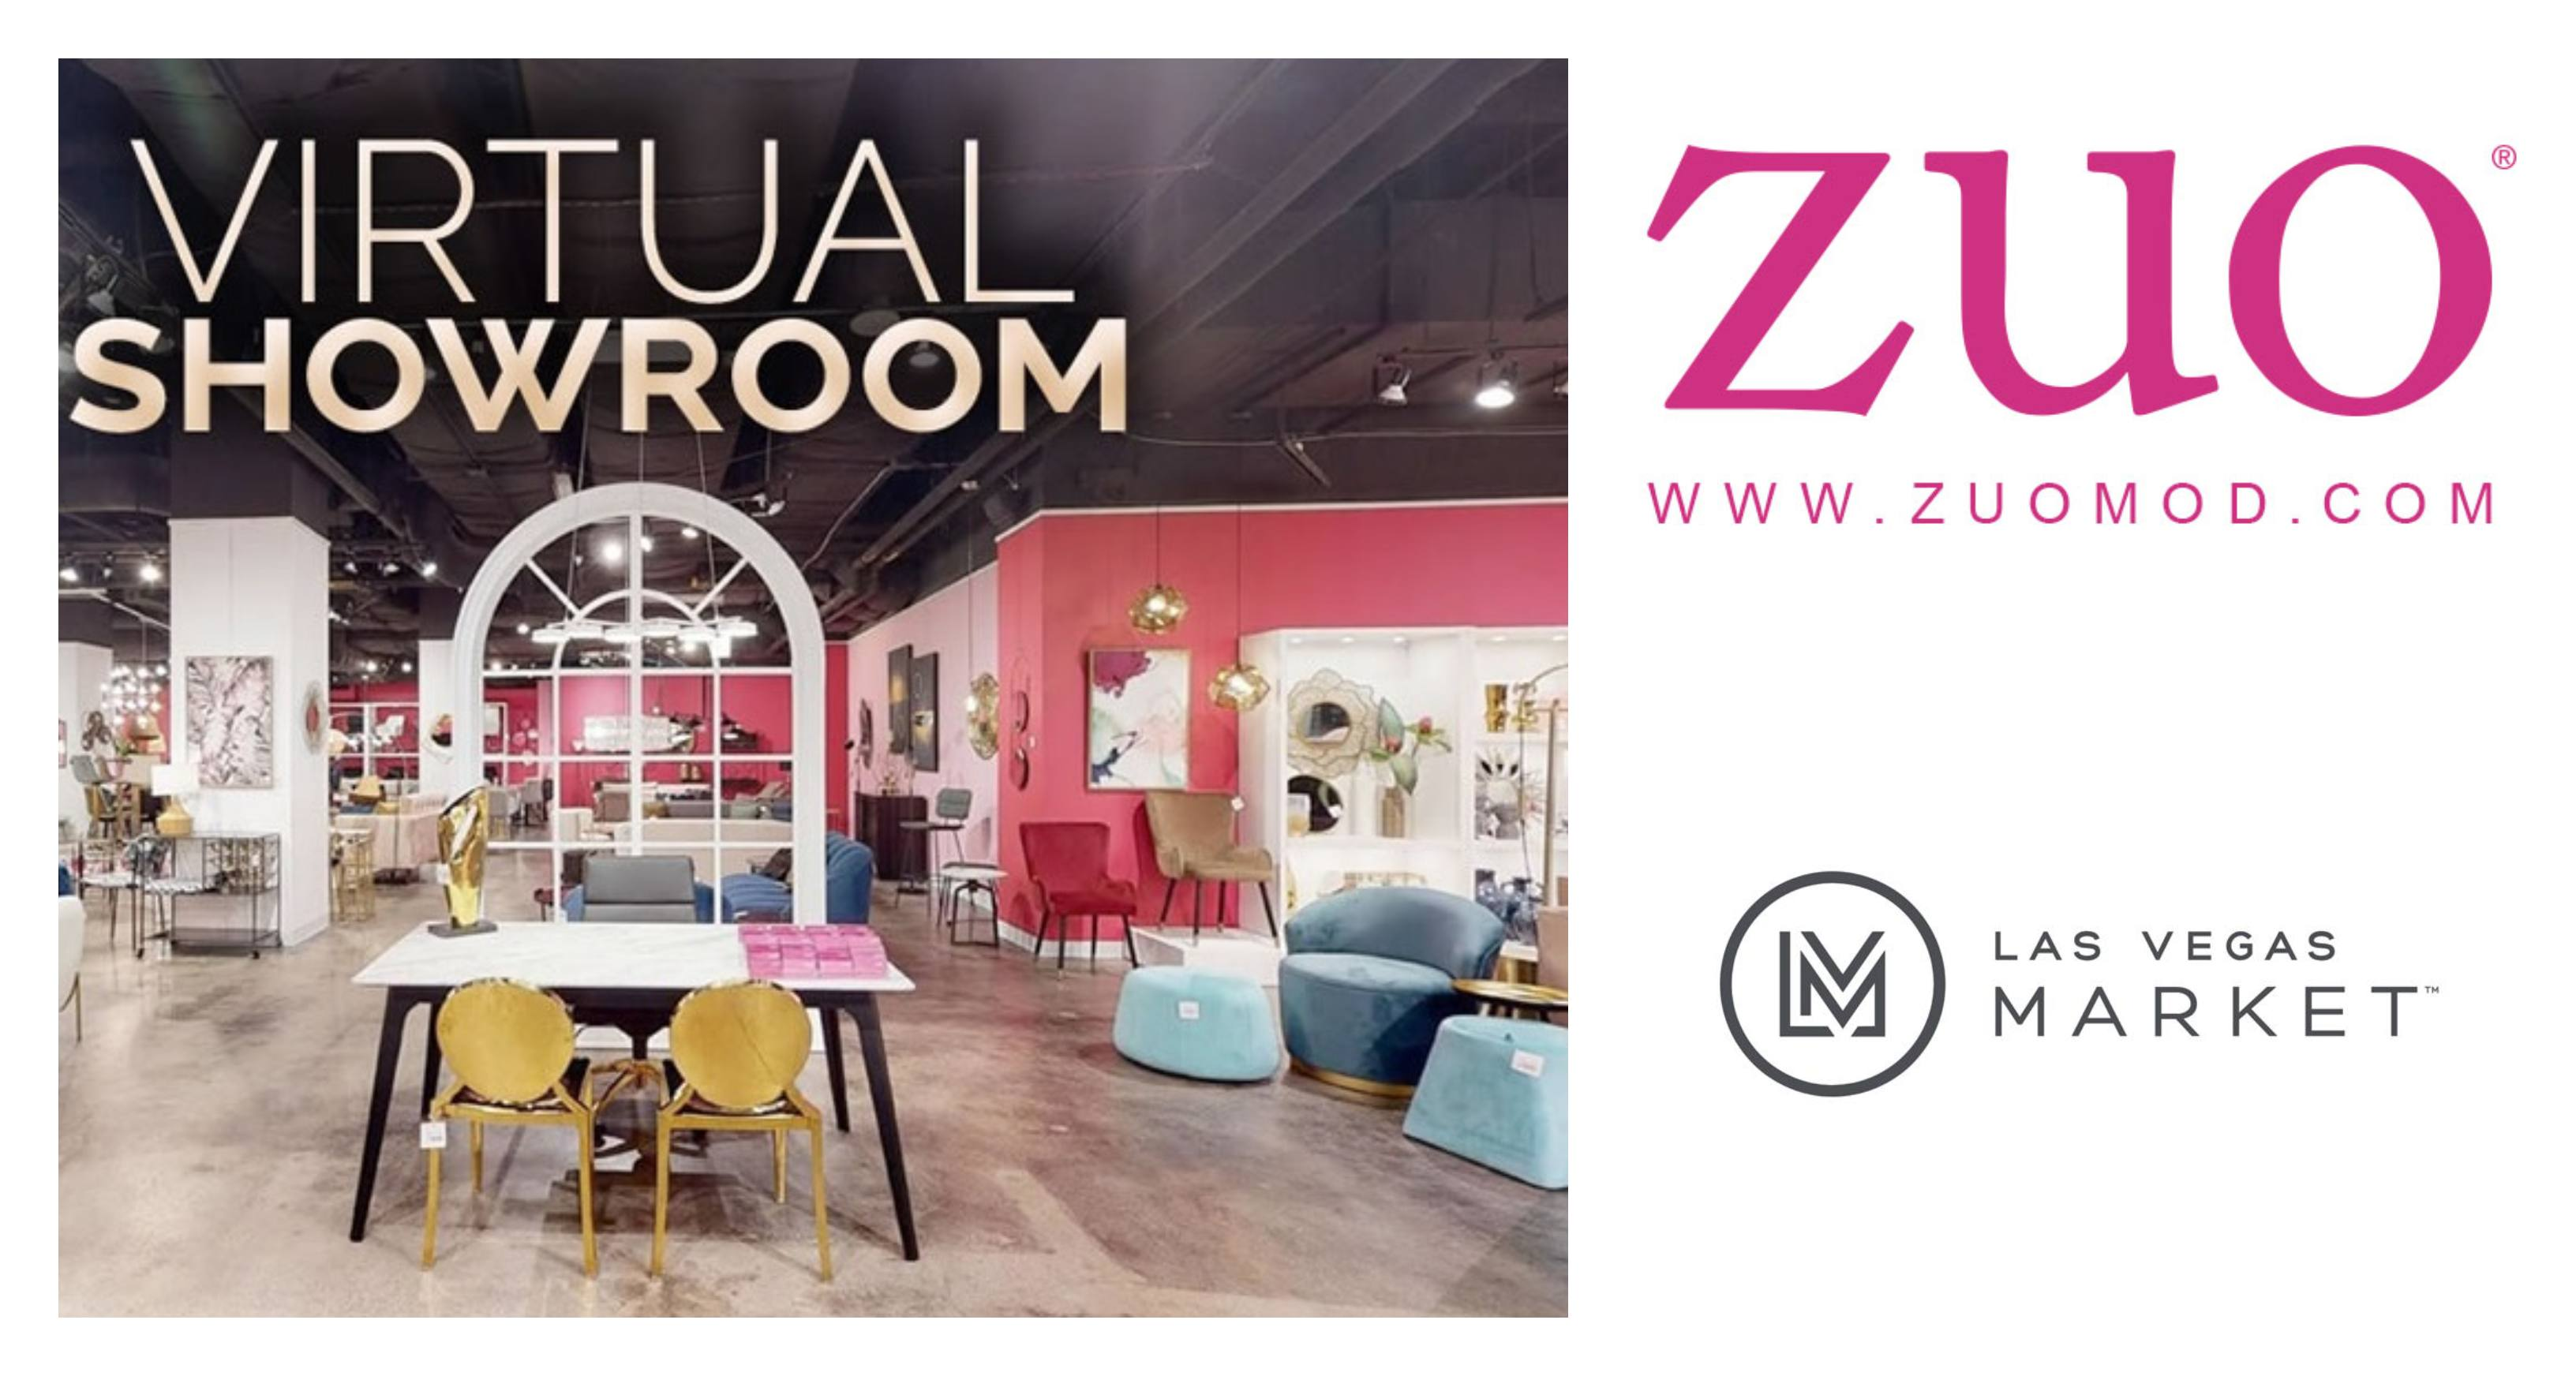 ZUO presents its completely brand new Virtual Showroom